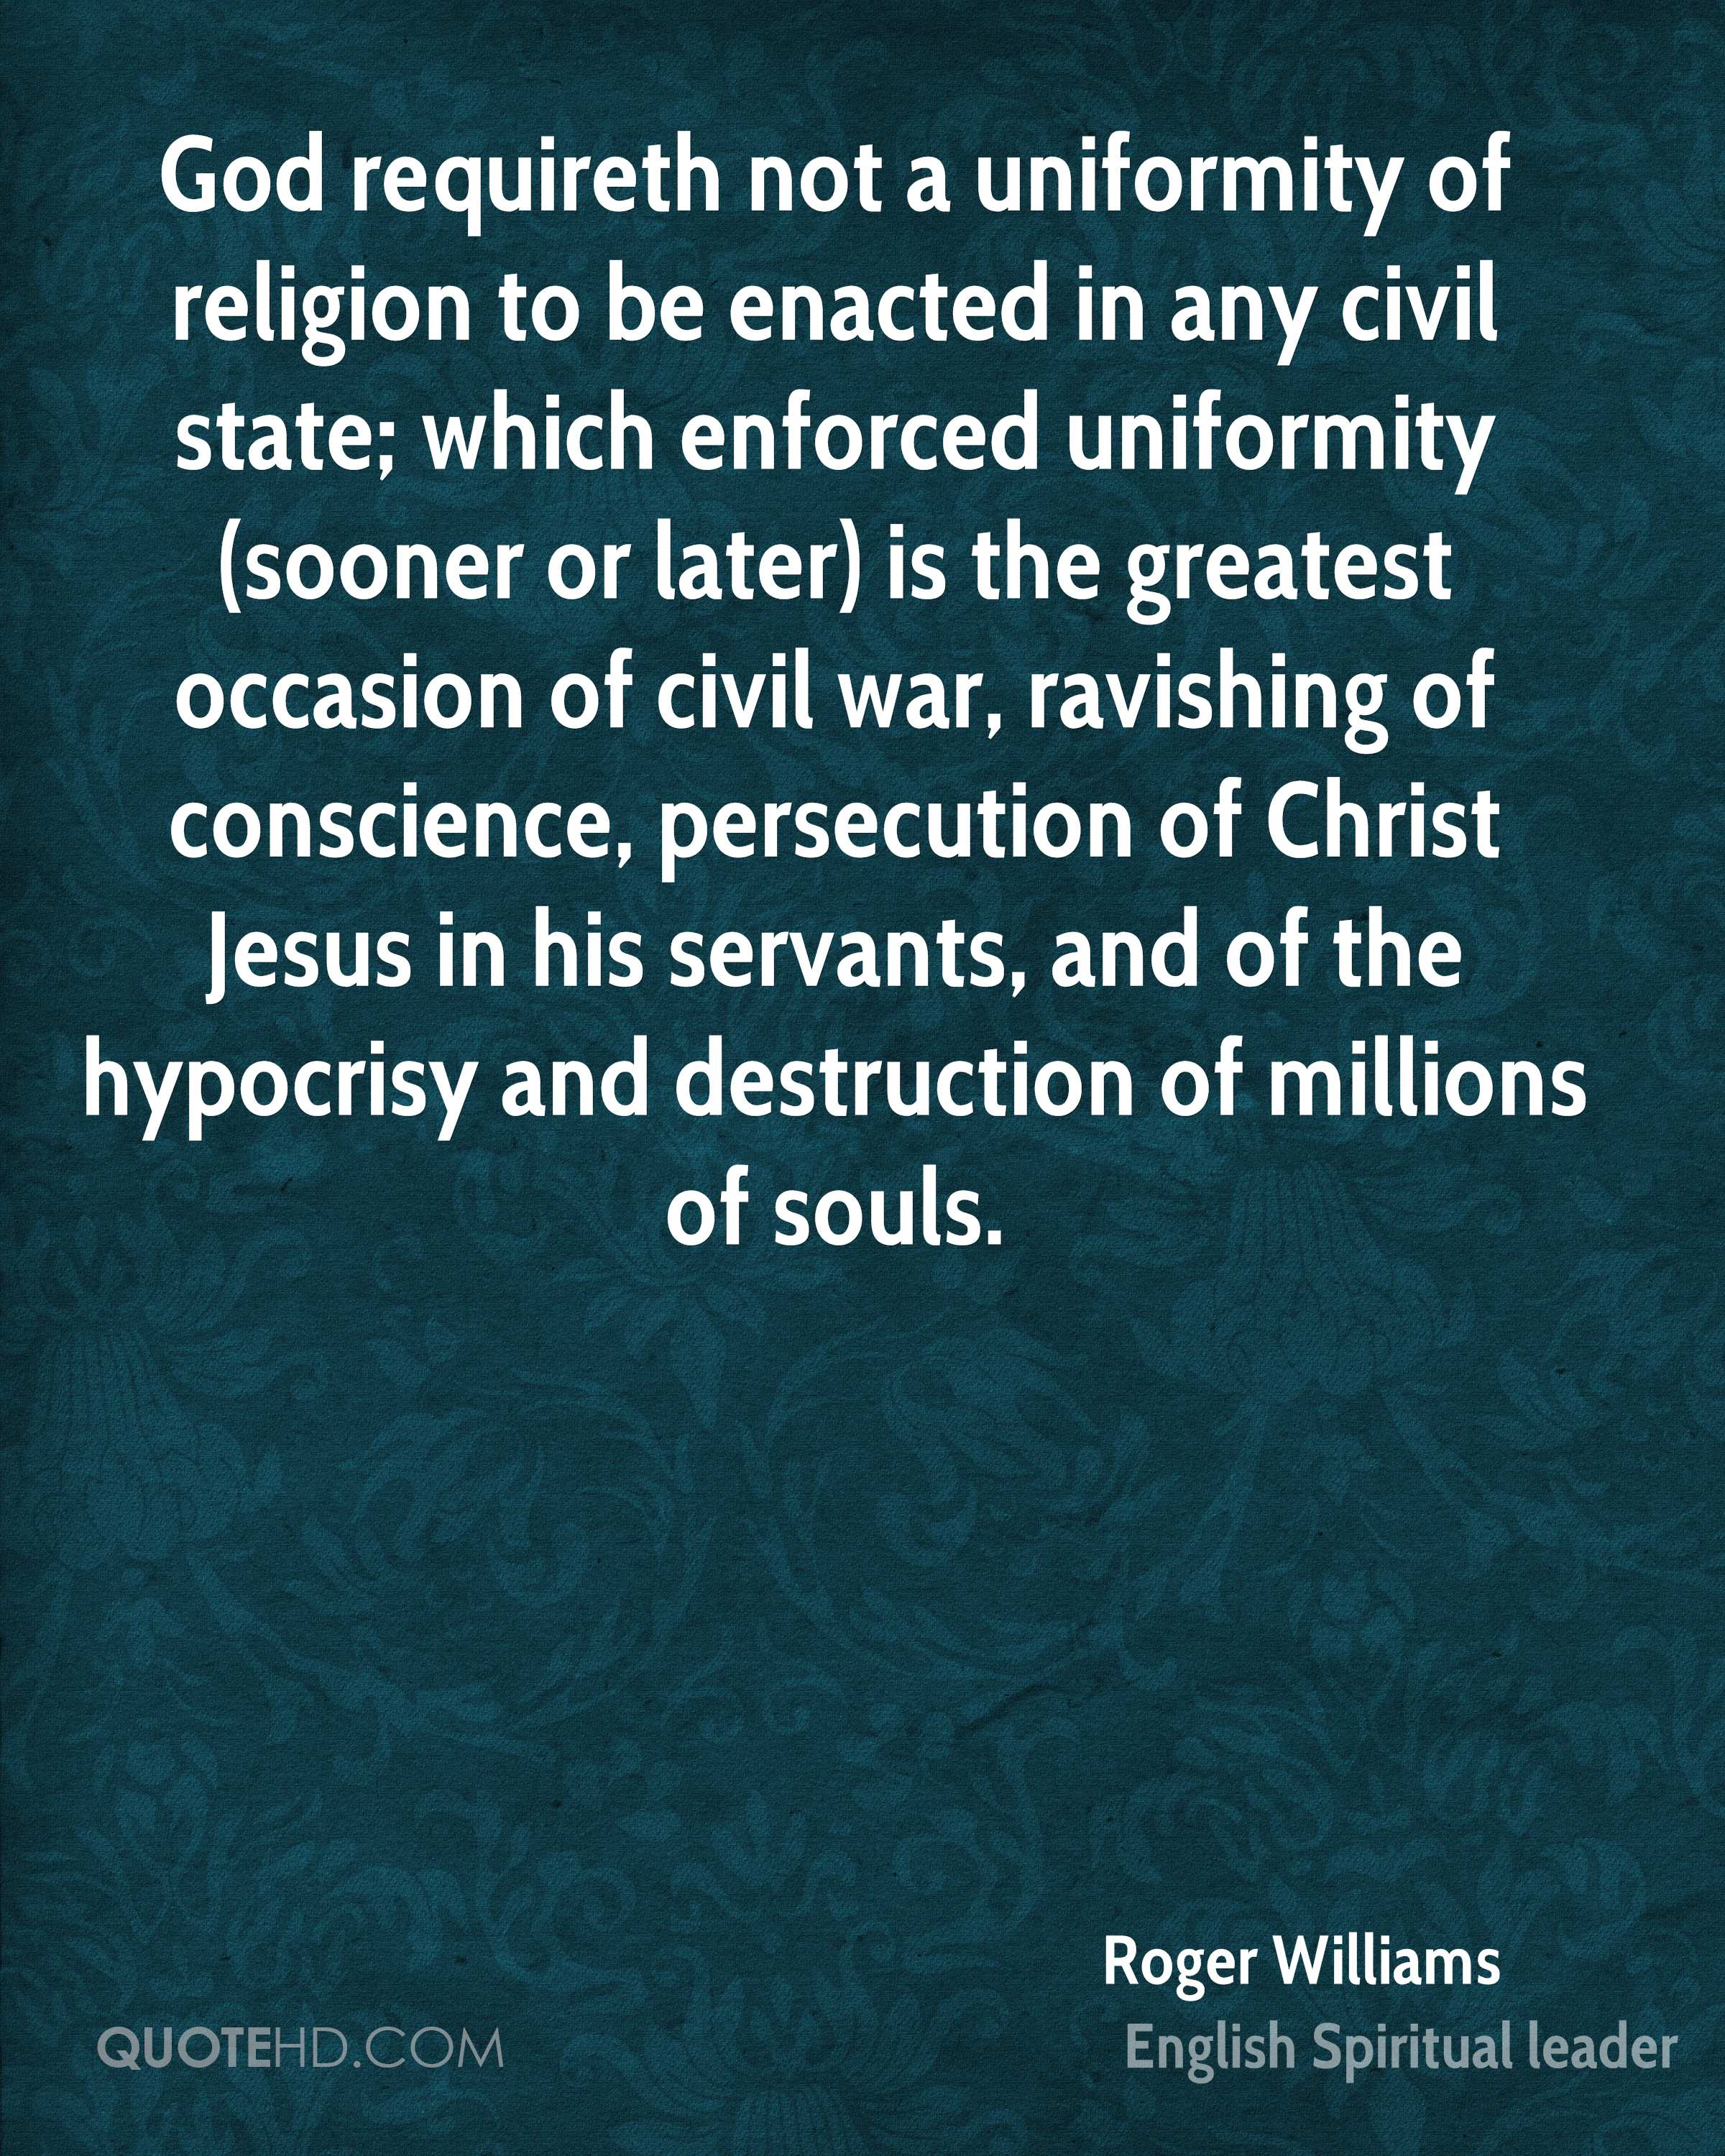 God requireth not a uniformity of religion to be enacted in any civil state; which enforced uniformity (sooner or later) is the greatest occasion of civil war, ravishing of conscience, persecution of Christ Jesus in his servants, and of the hypocrisy and destruction of millions of souls.